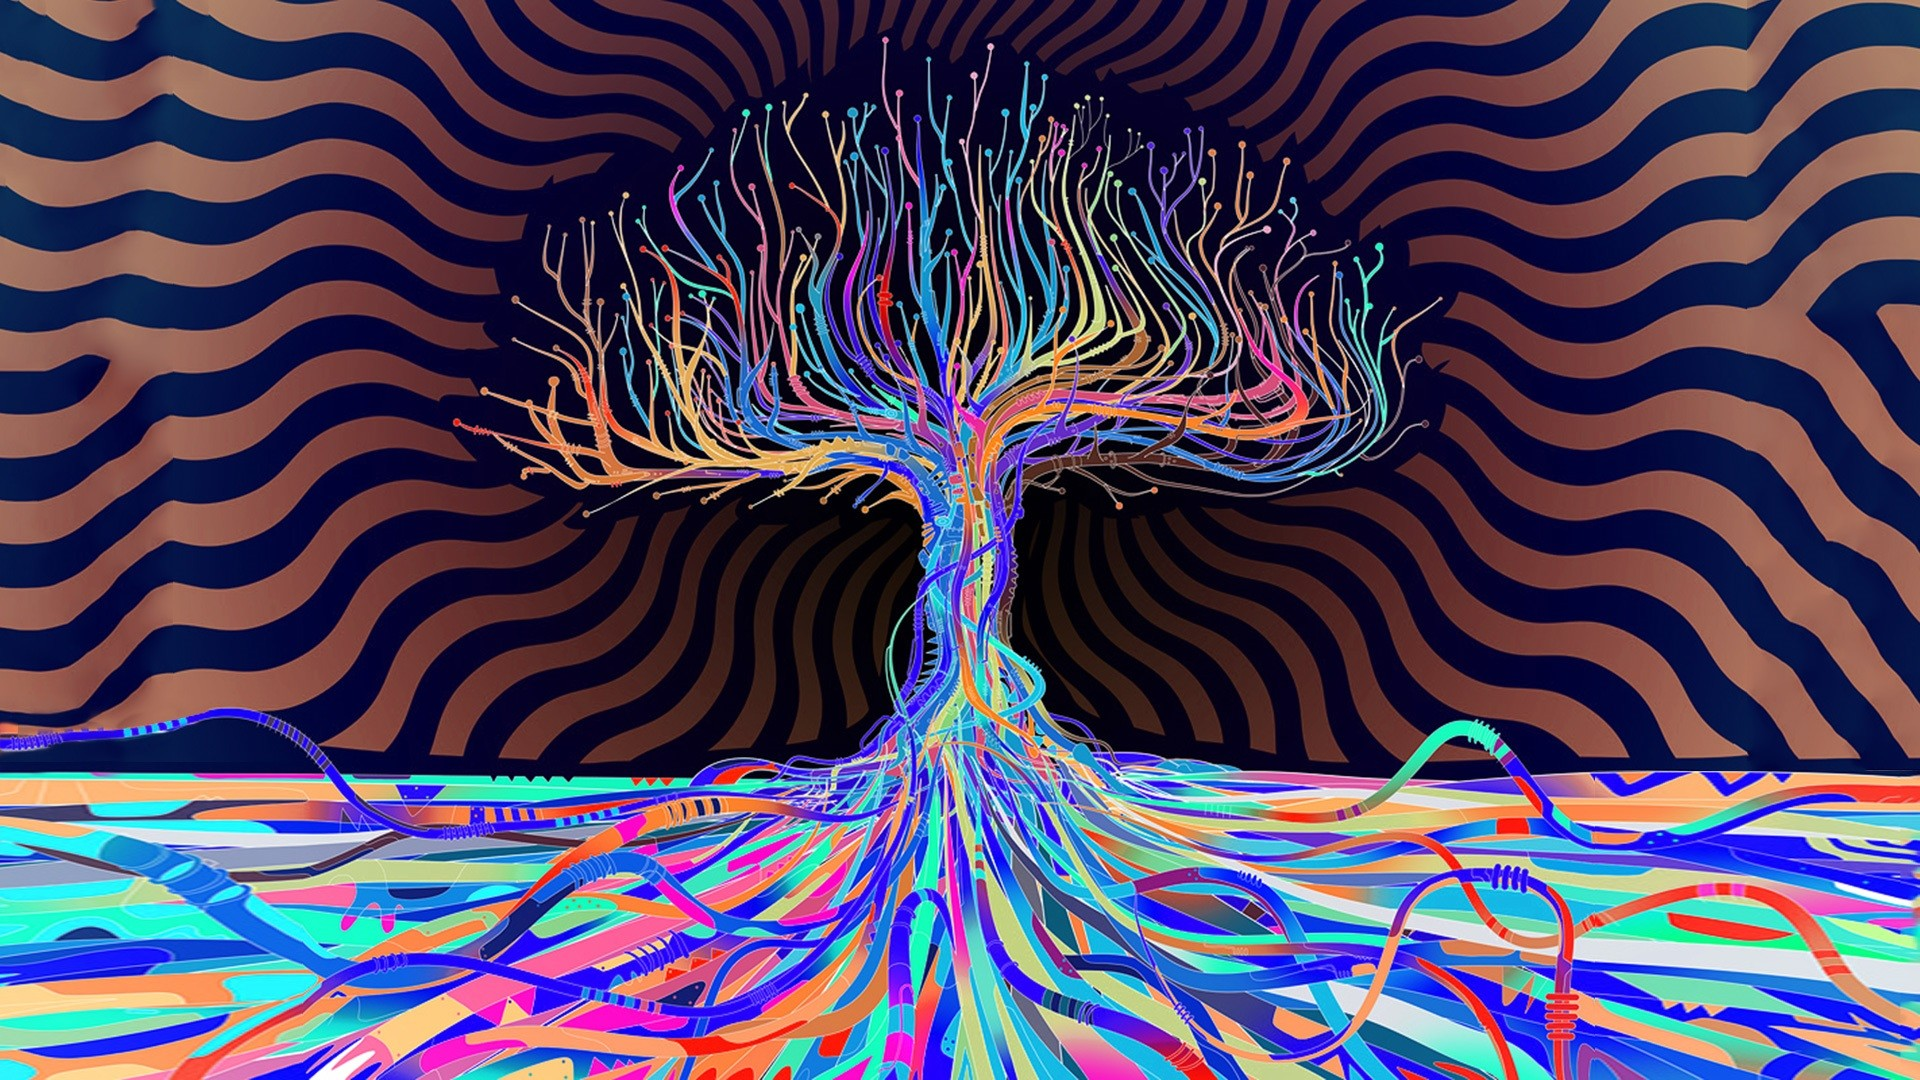 Trippy Wallpapers Hd: Trippy Lsd Wallpaper (59+ Images